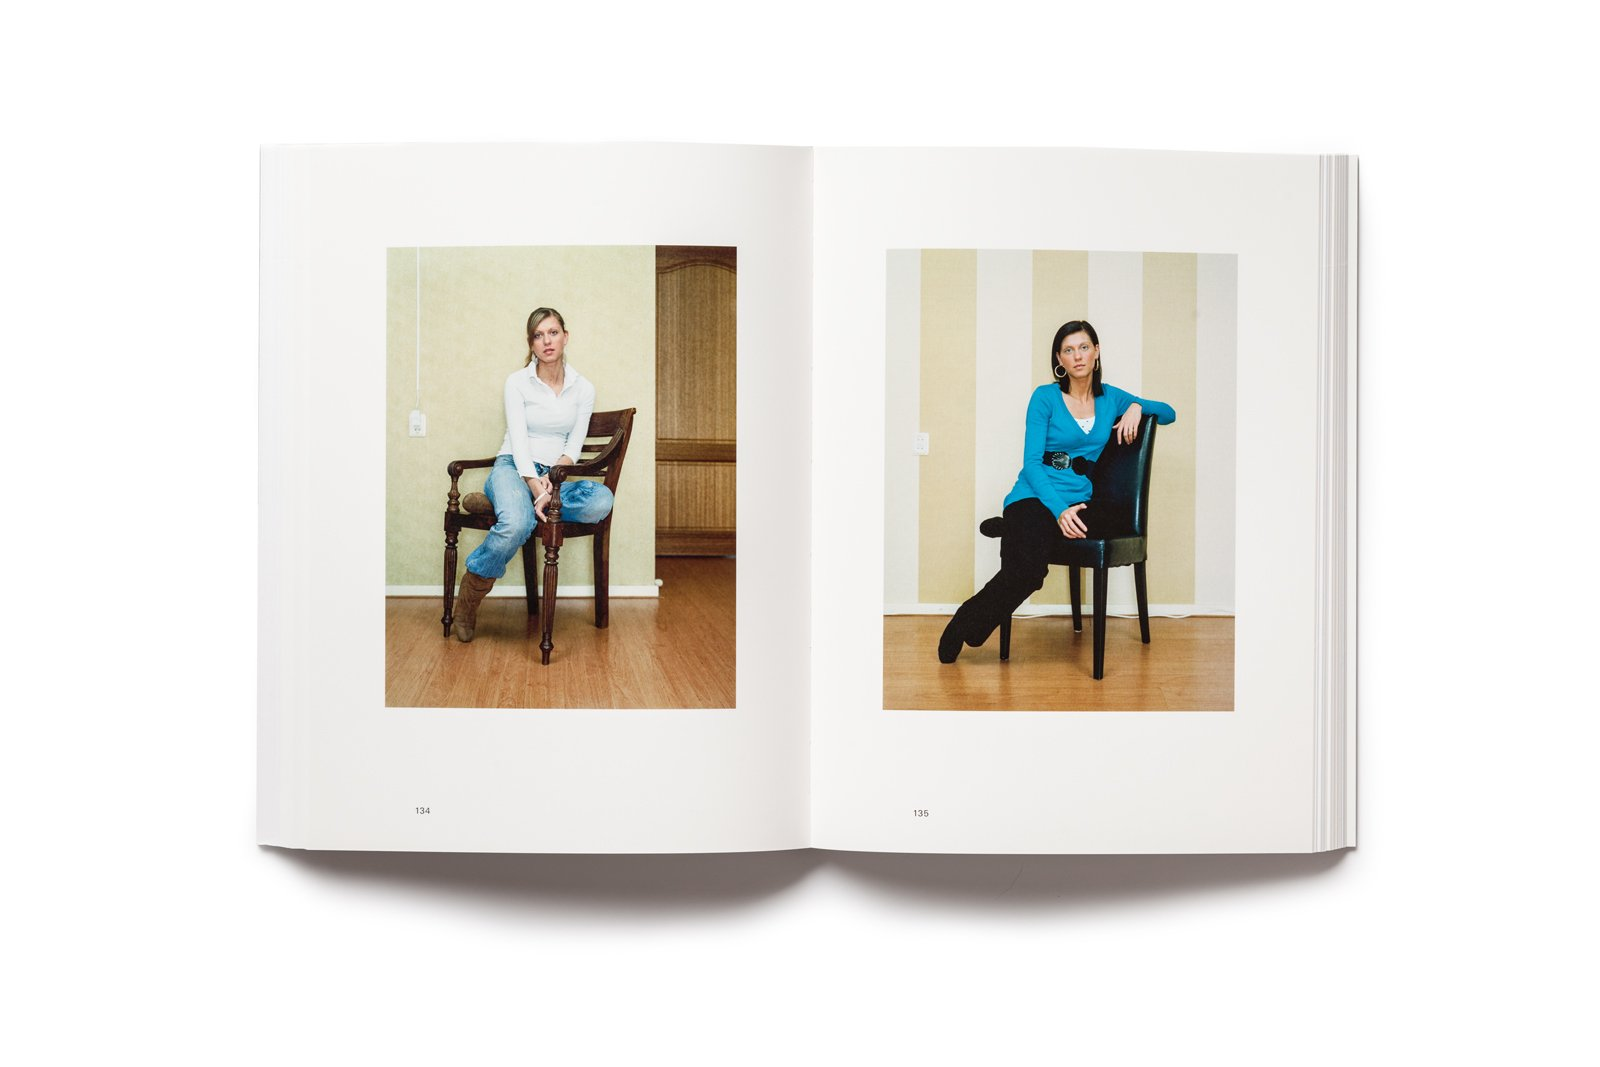 Rineke Dijkstra publication pages 134-145